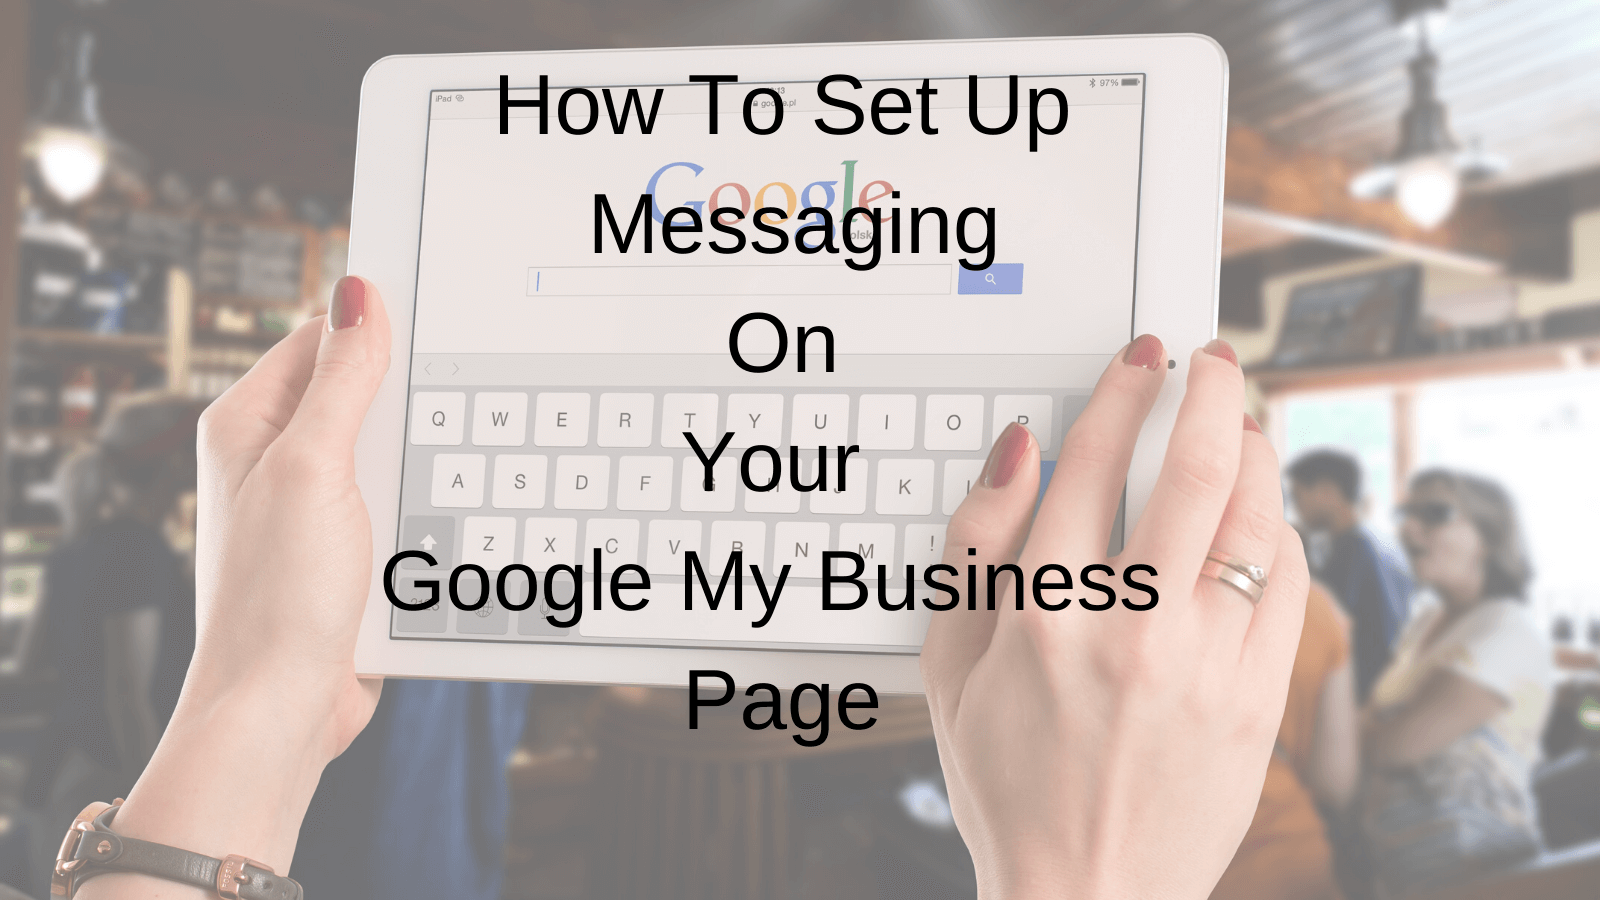 How To Set Up Messaging On Your Google My Business Page